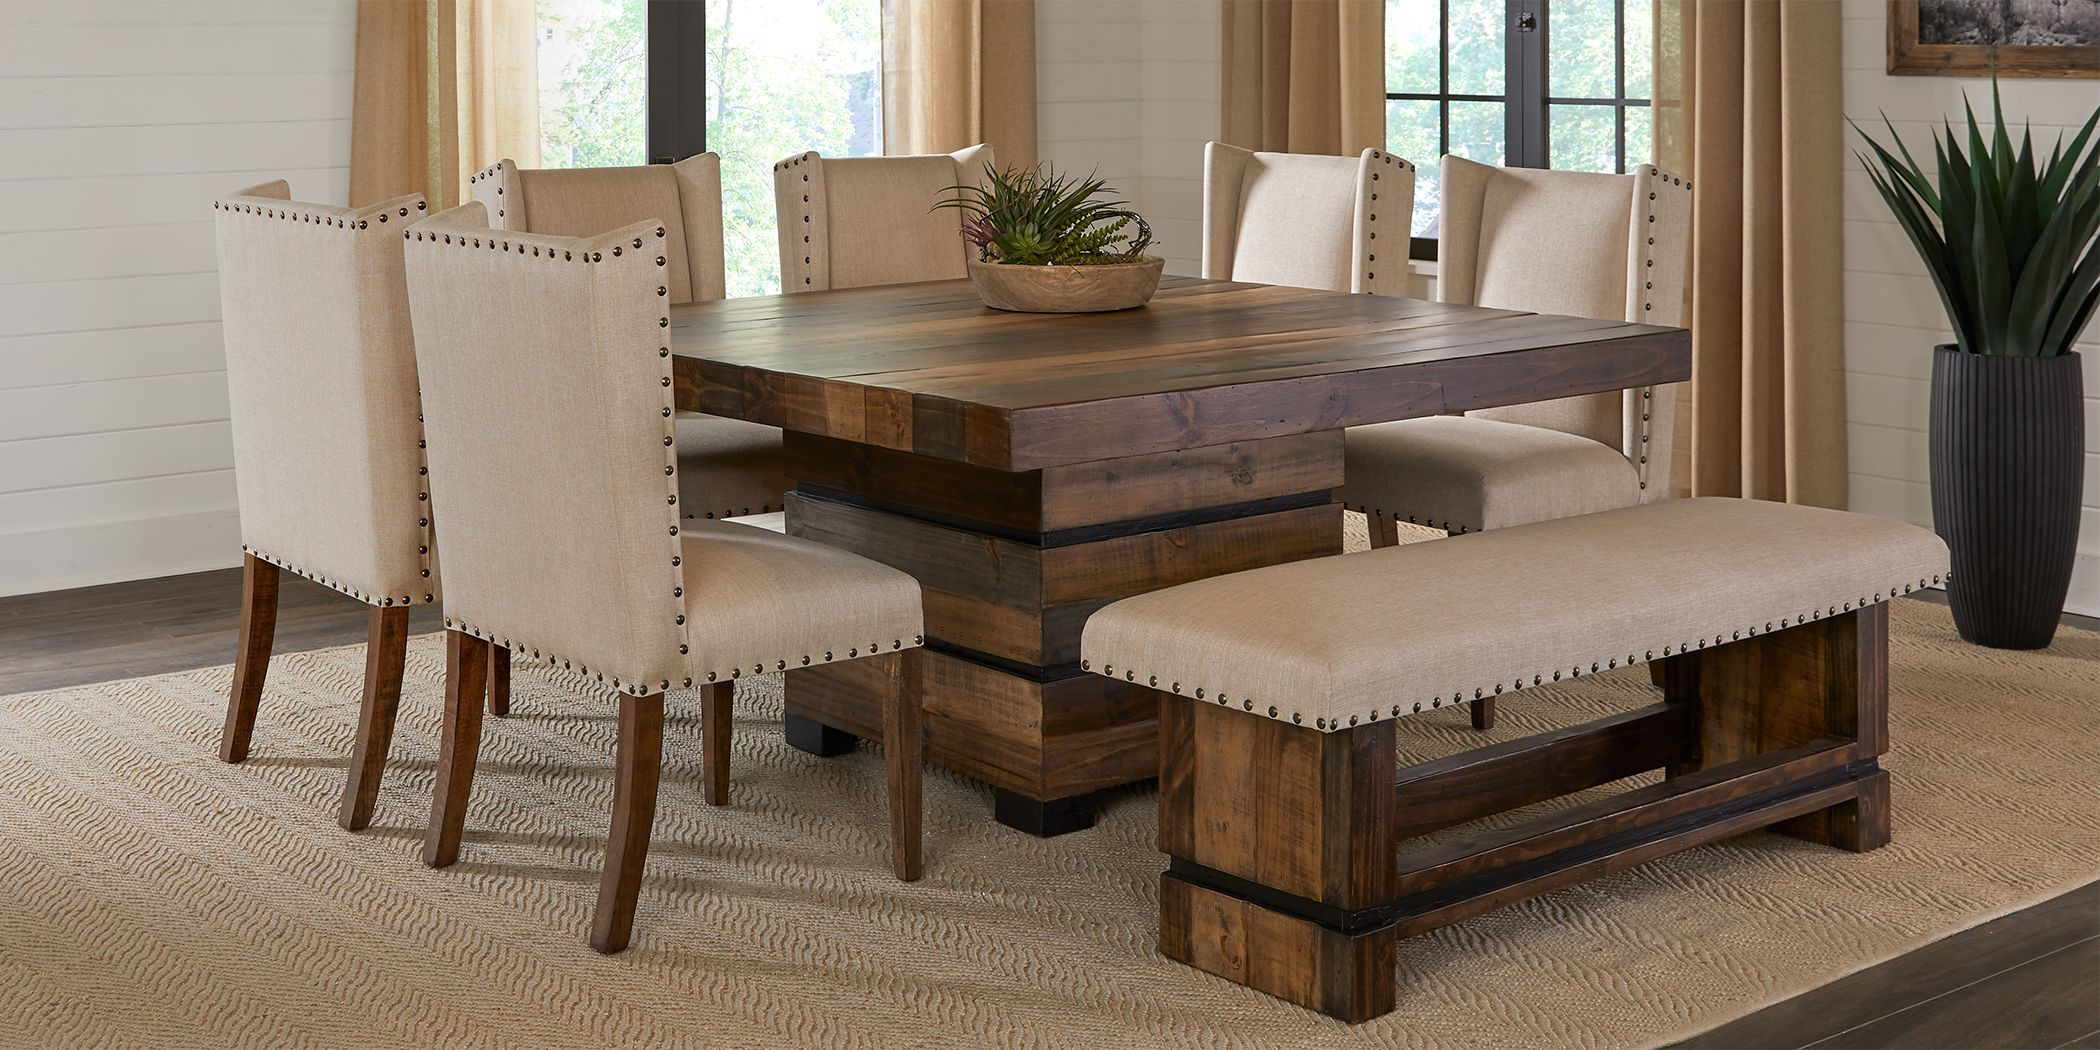 Cindy Crawford Home Westover Hills Brown 8 Pc Square Dining Room Square Dining Room Table Rustic Dining Room Table Brown Dining Room Table Dining table rooms to go